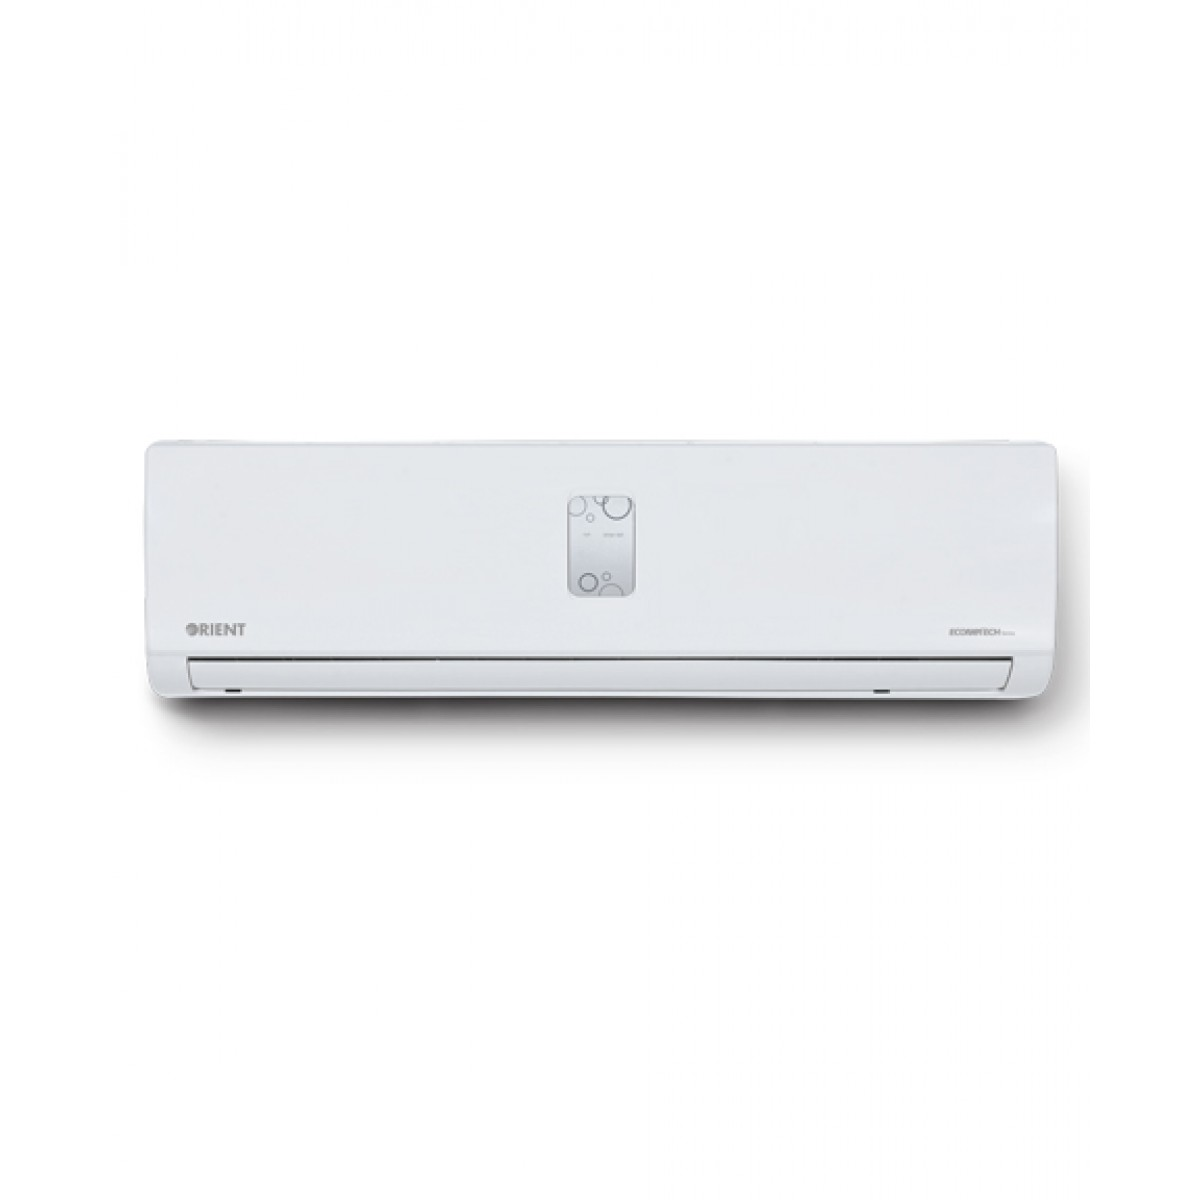 Orient Split Air Conditioner Econotech 1.0 Ton (OS-13 MF04)